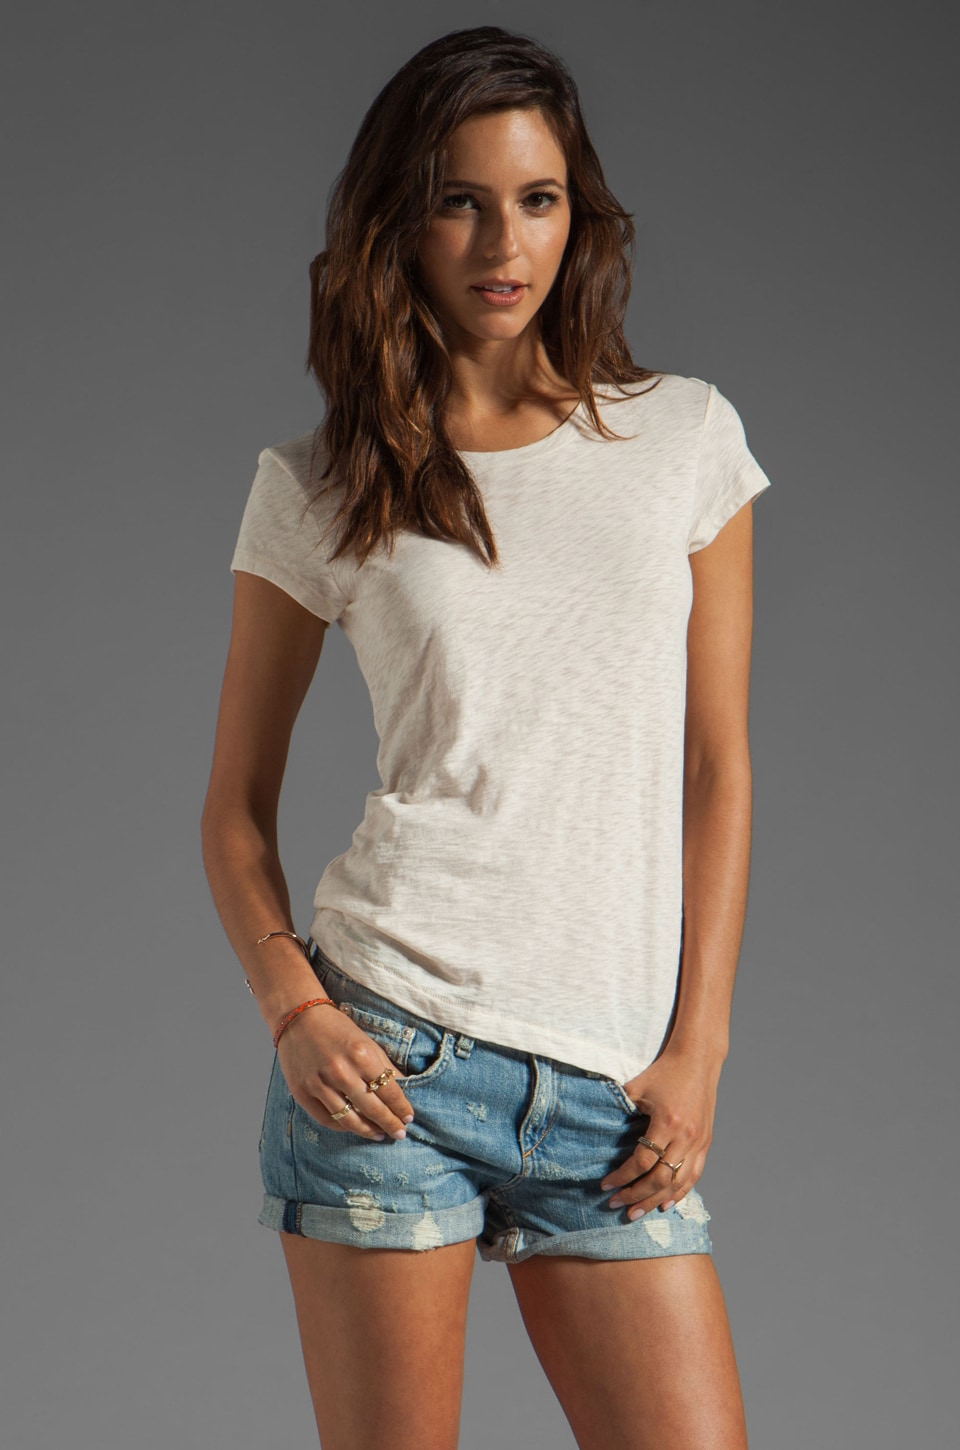 rag & bone/JEAN The Basic Brando Tee in Magnolia